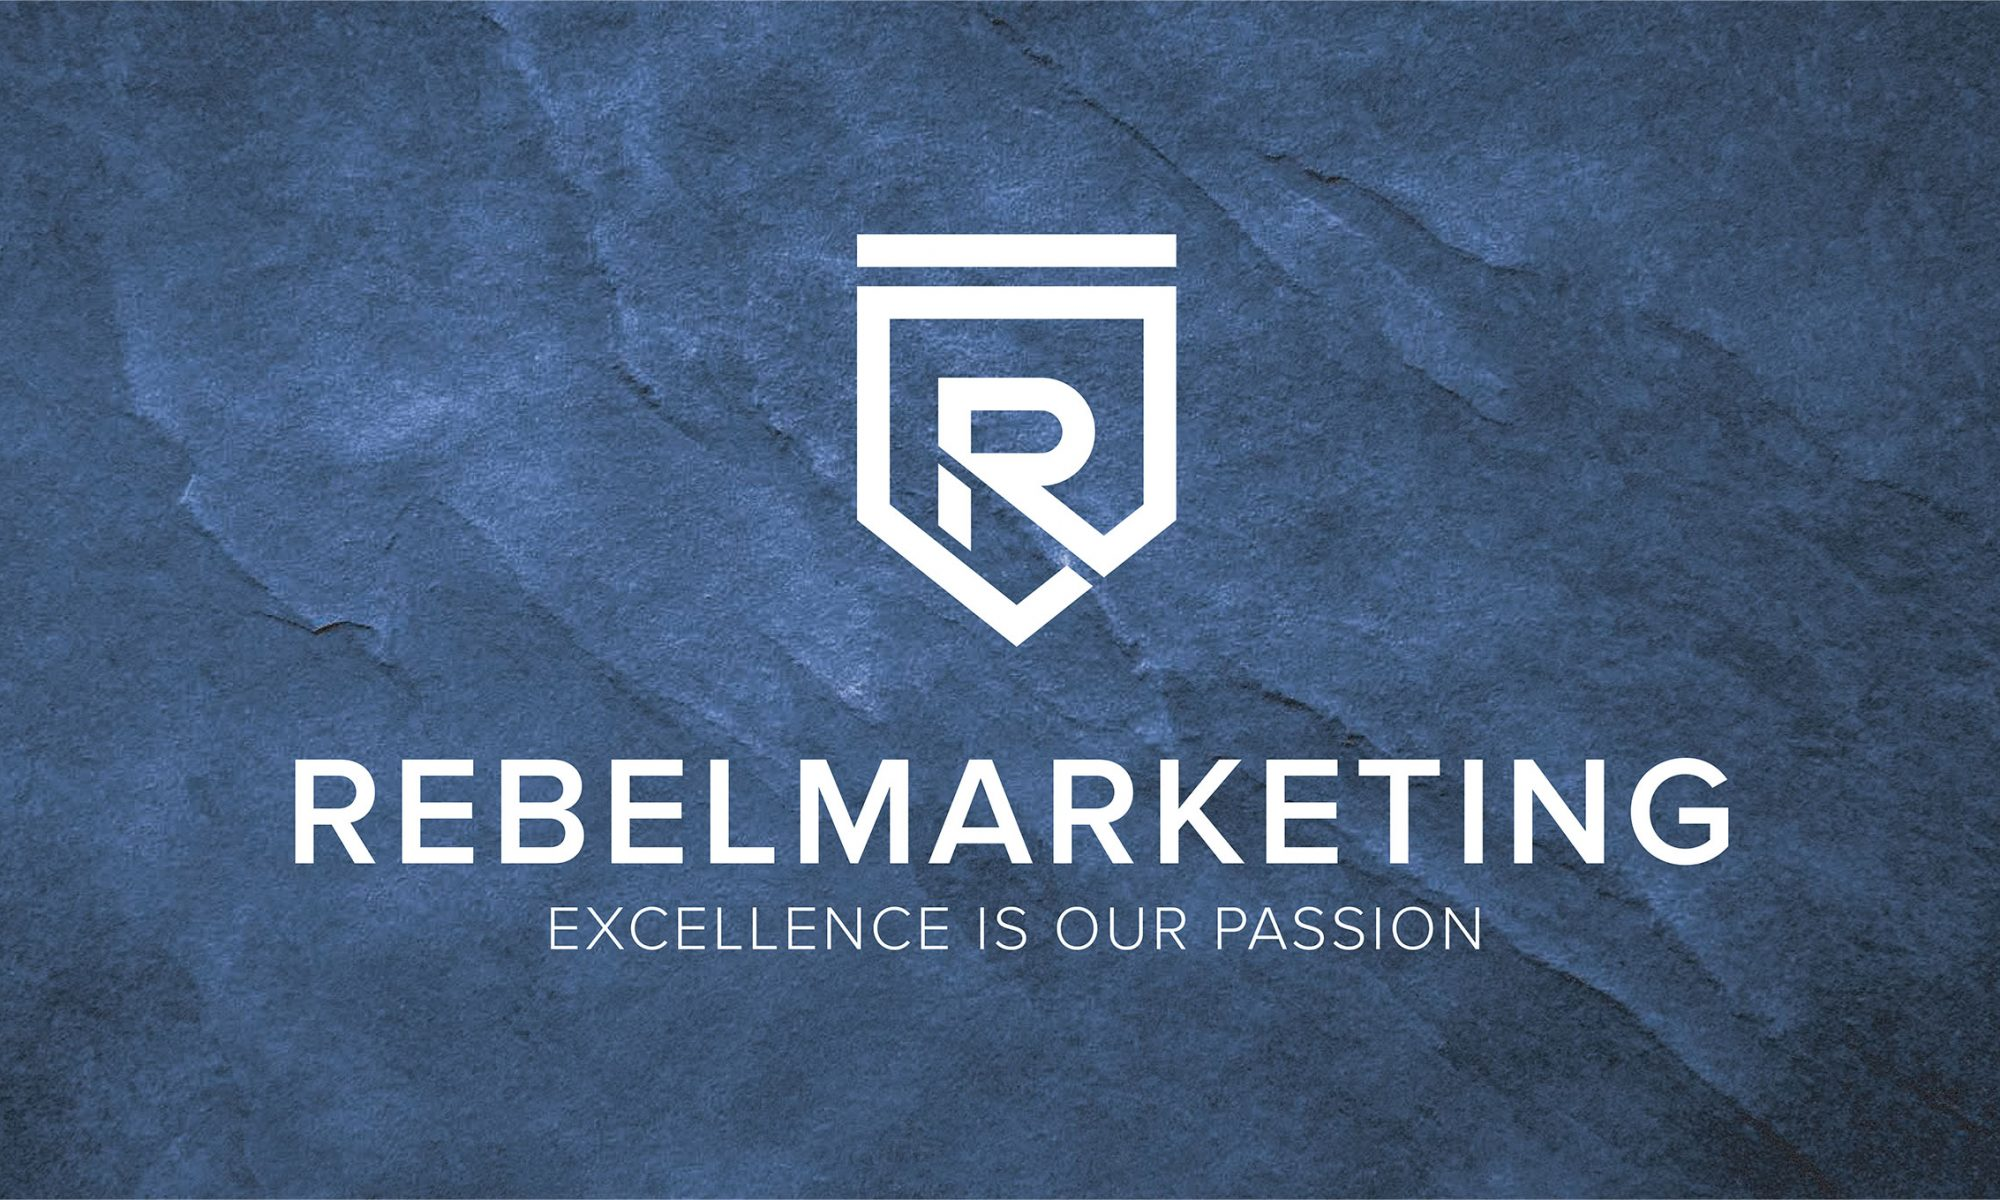 Rebelmarketing